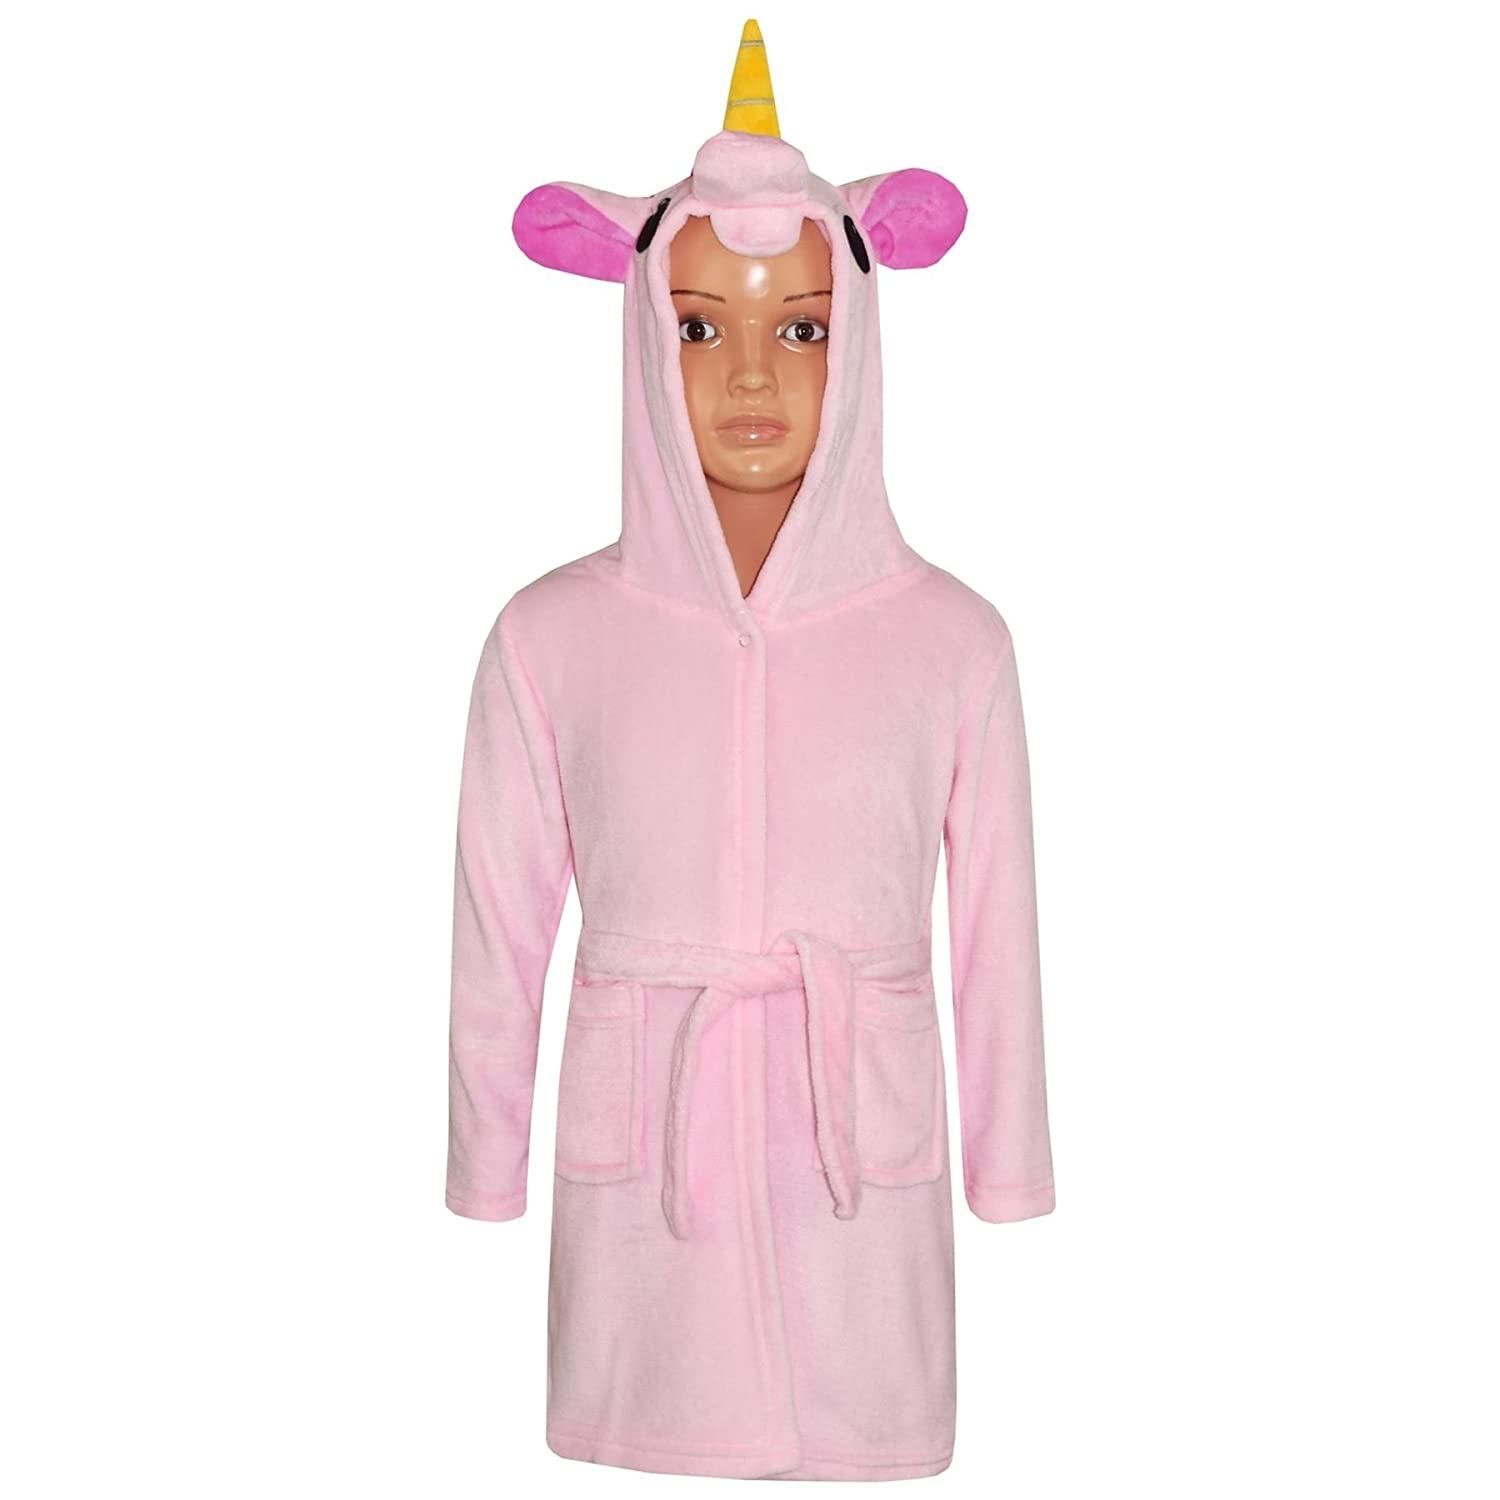 Amazon.com: Girls Bathrobe 3D Animal Unicorn Baby Pink Dressing Gown Fleece Night Loungewear: Clothing